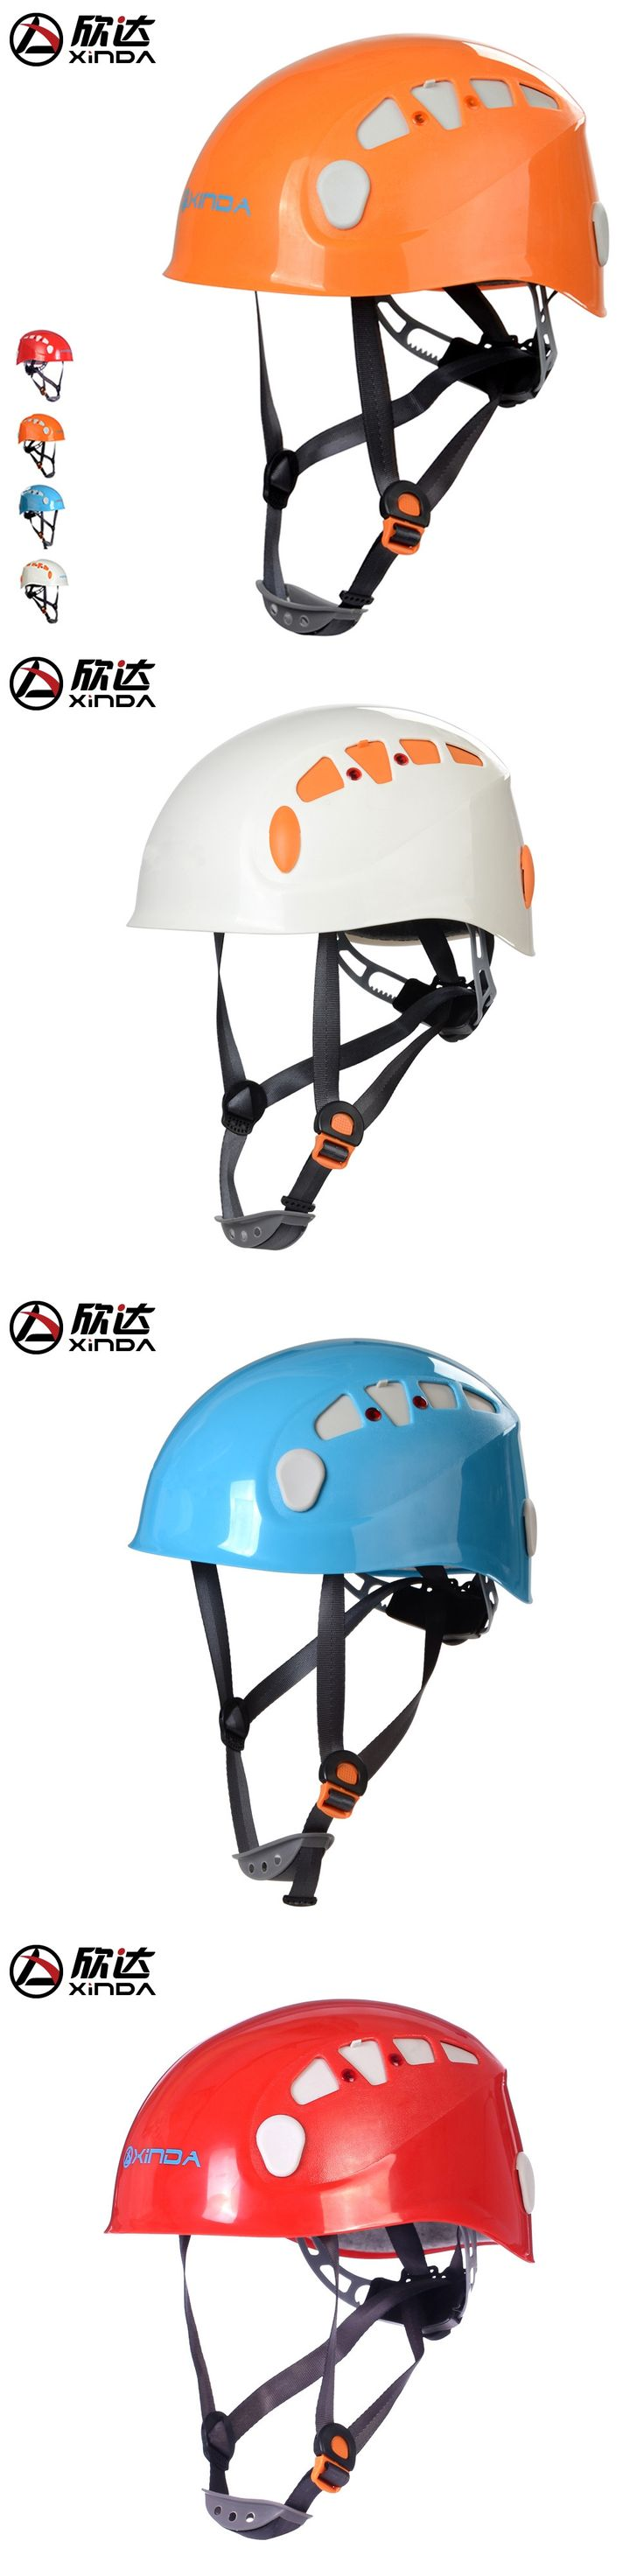 XINDA FREE SHIPPING Outdoor Downhill Climbing Helmets Riding Mountaineering Tunnel Cable Drop Rescue Helmet Drifting Equipment